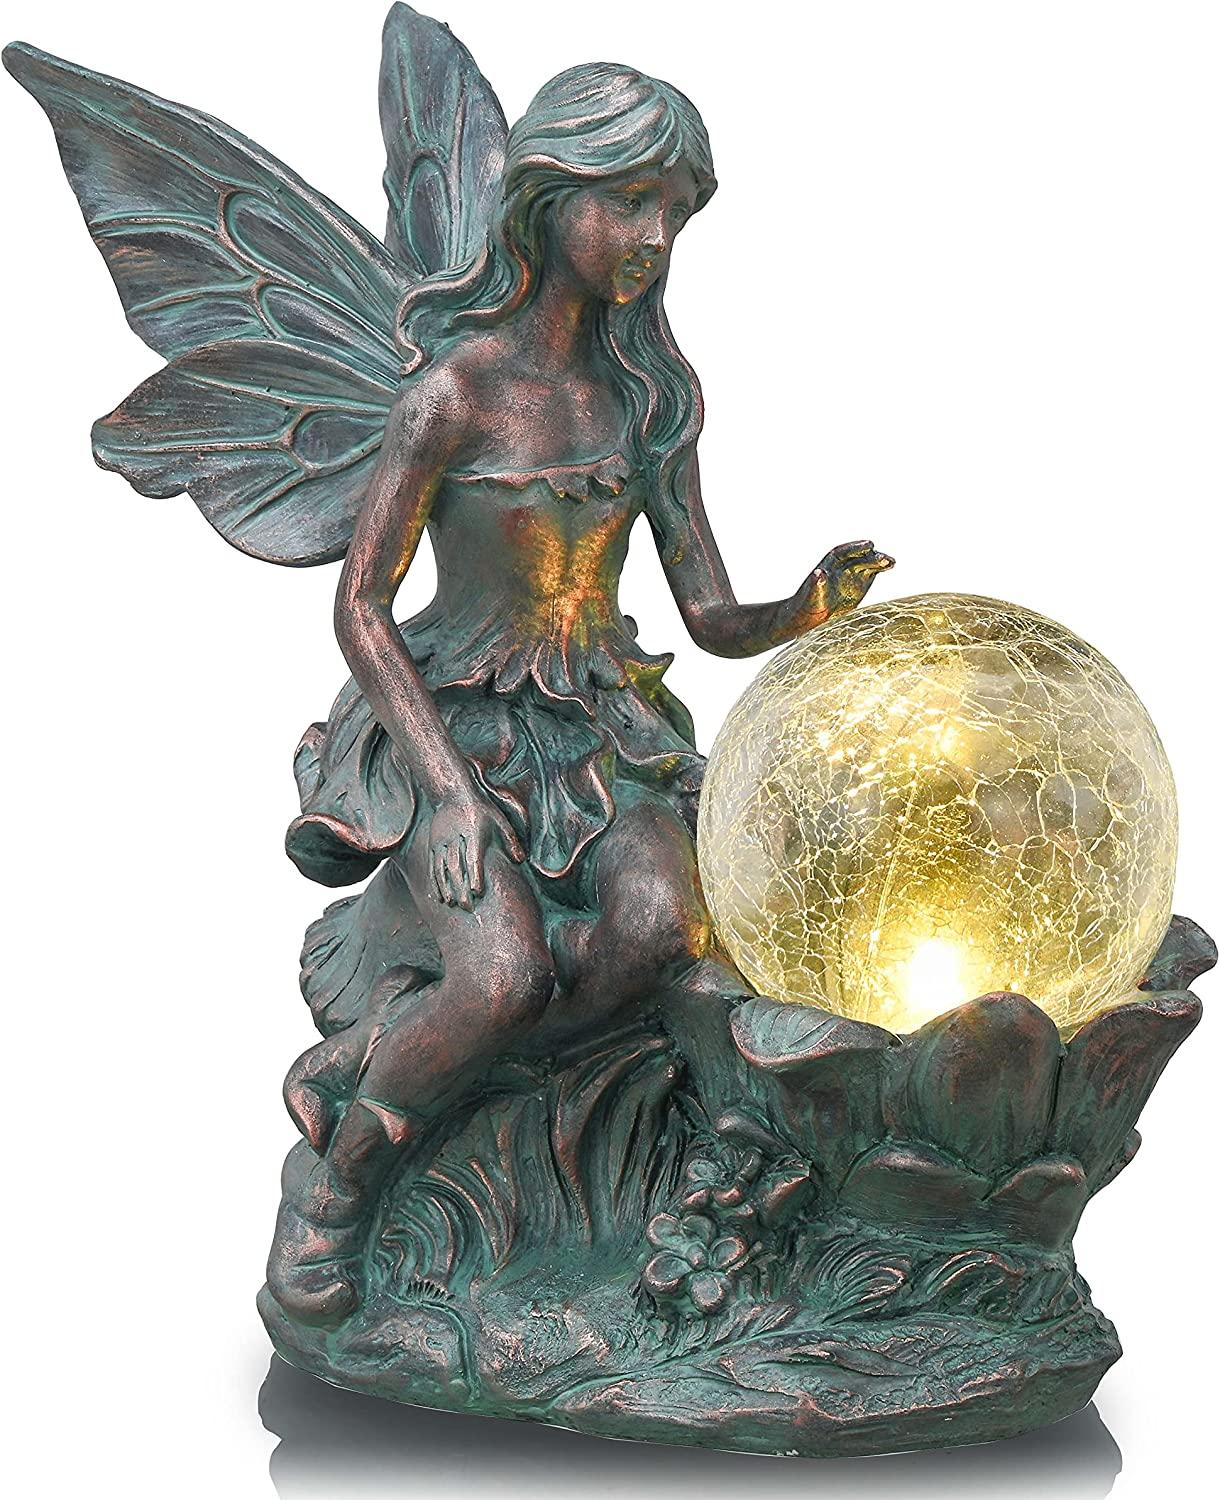 TERESA'S COLLECTIONS Large Fairy Garden Statue and Sculpture with Solar Powered Lights, Garden Angel Figurines with Crackle Glass Globe, Garden Art for Outdoor Lawn Yard Decorations, 11.8 inch Tall